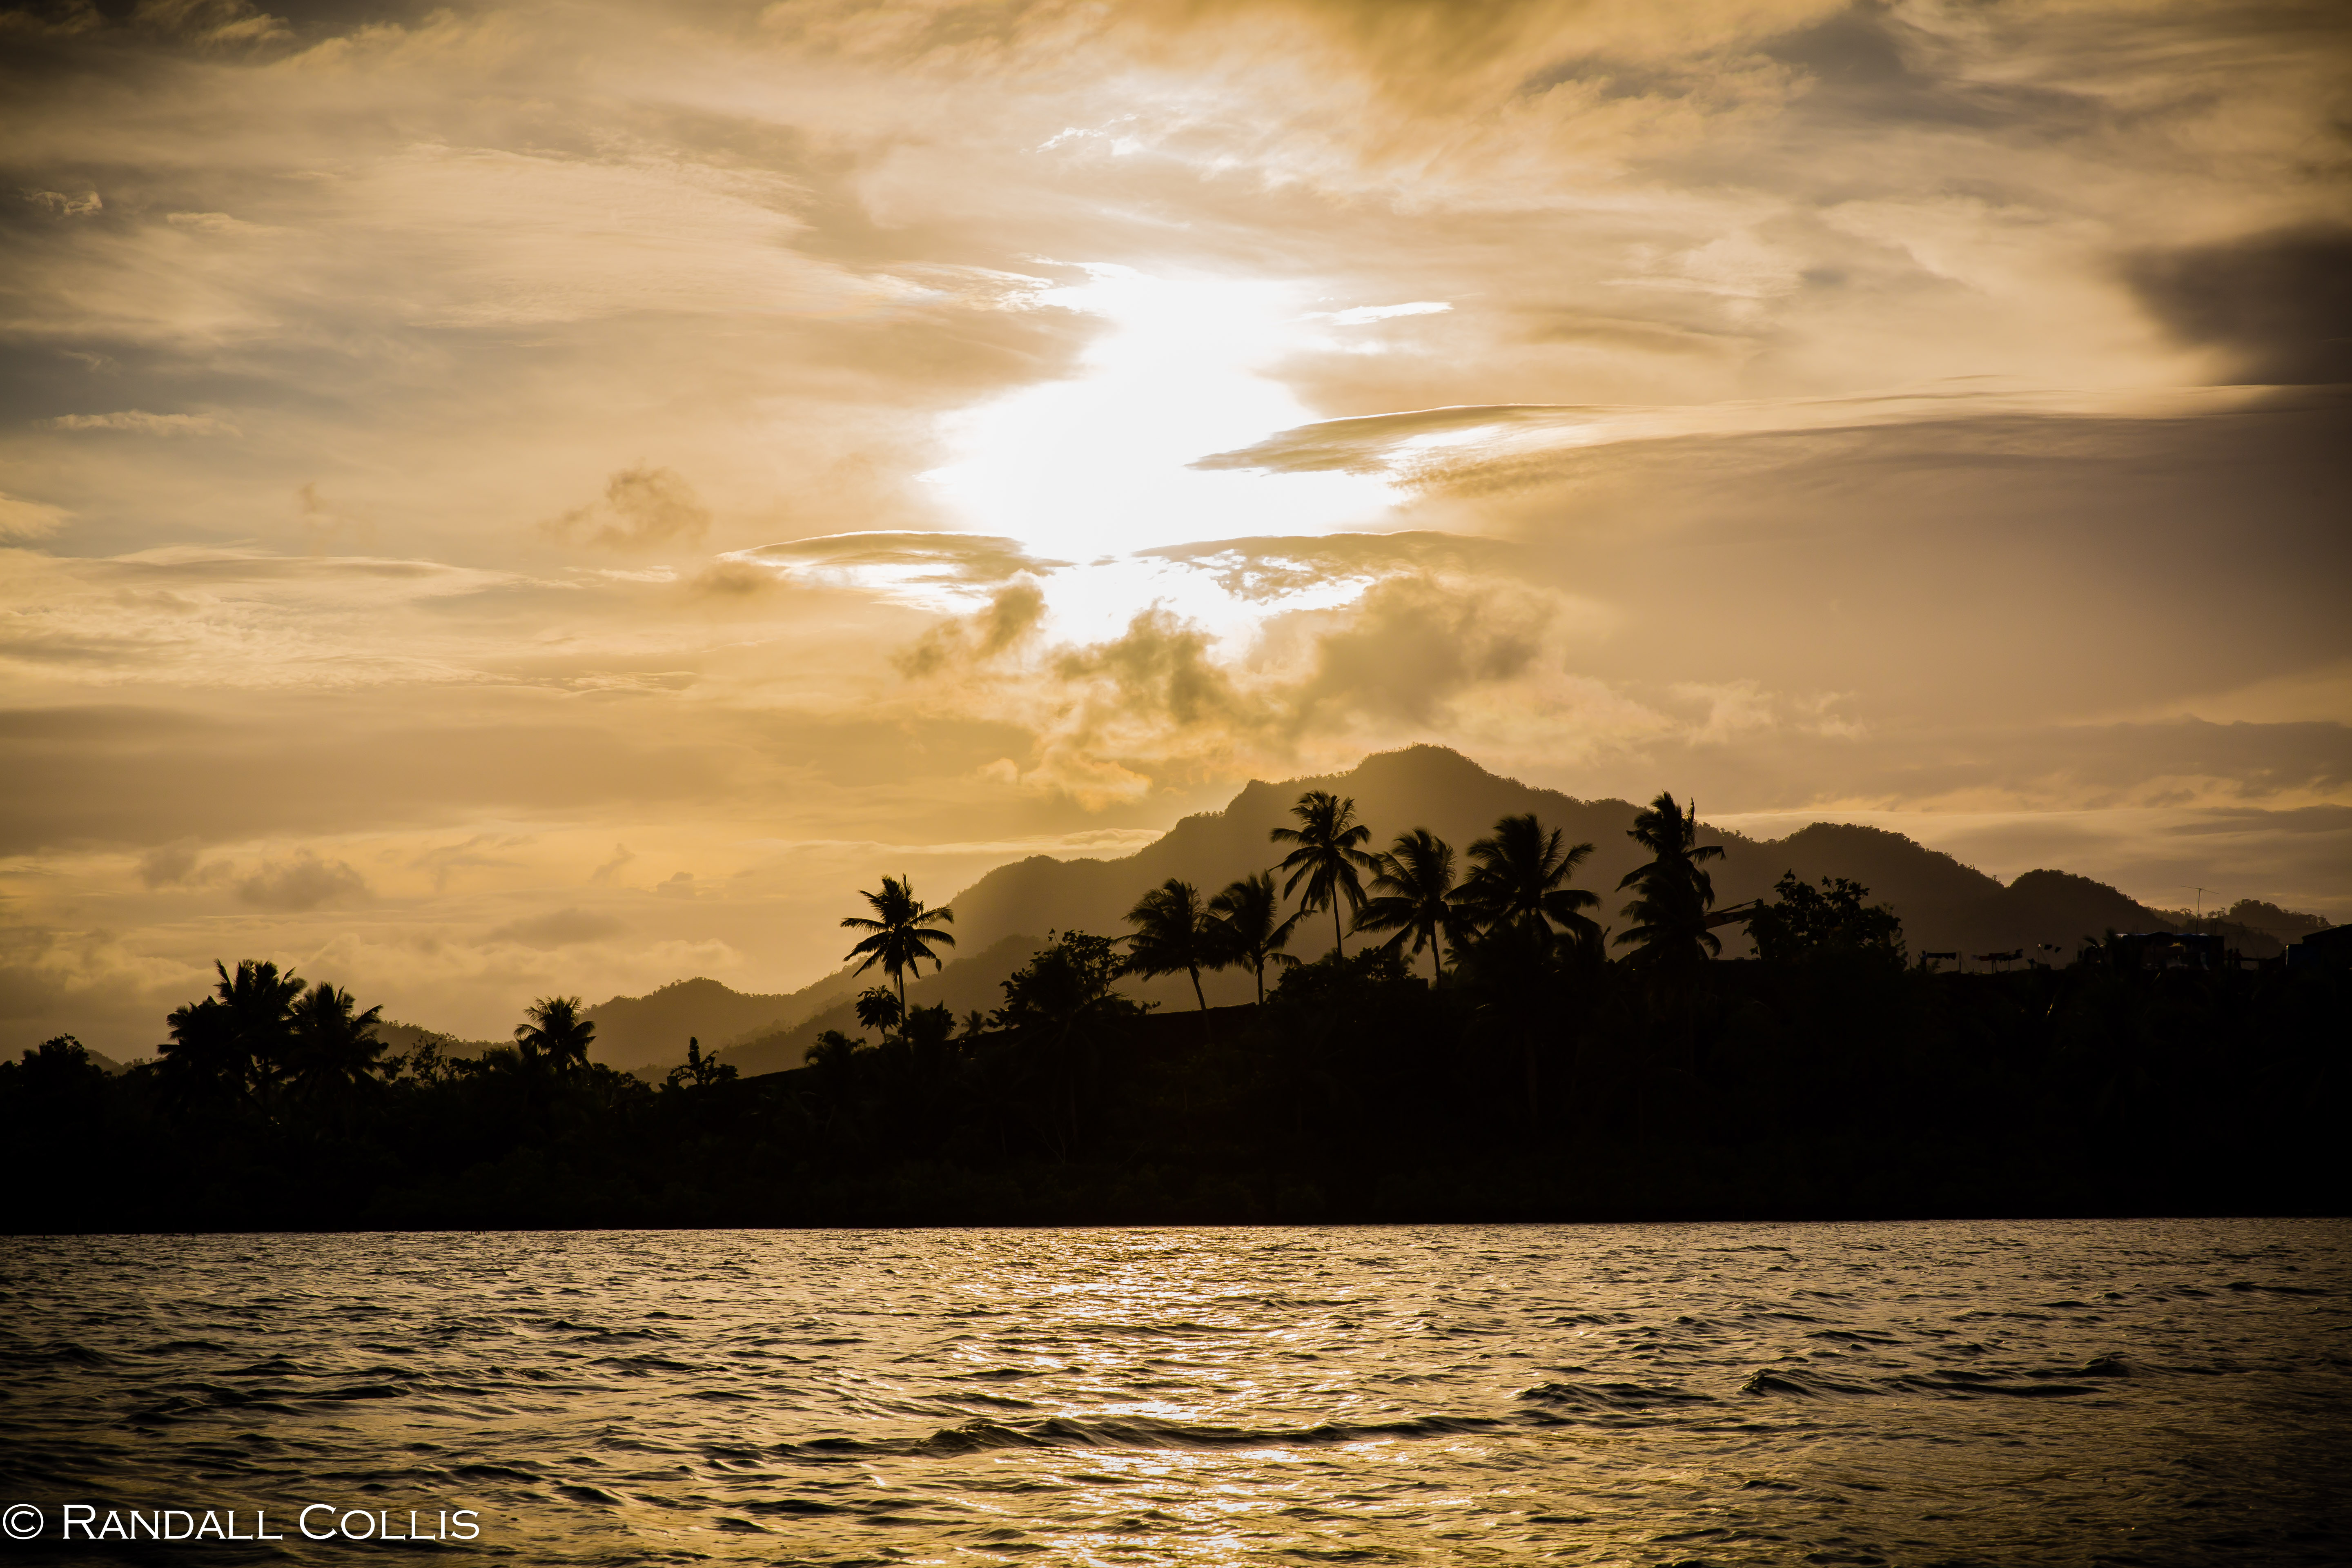 The Endurance of Tacloban: Heart of the Philippines